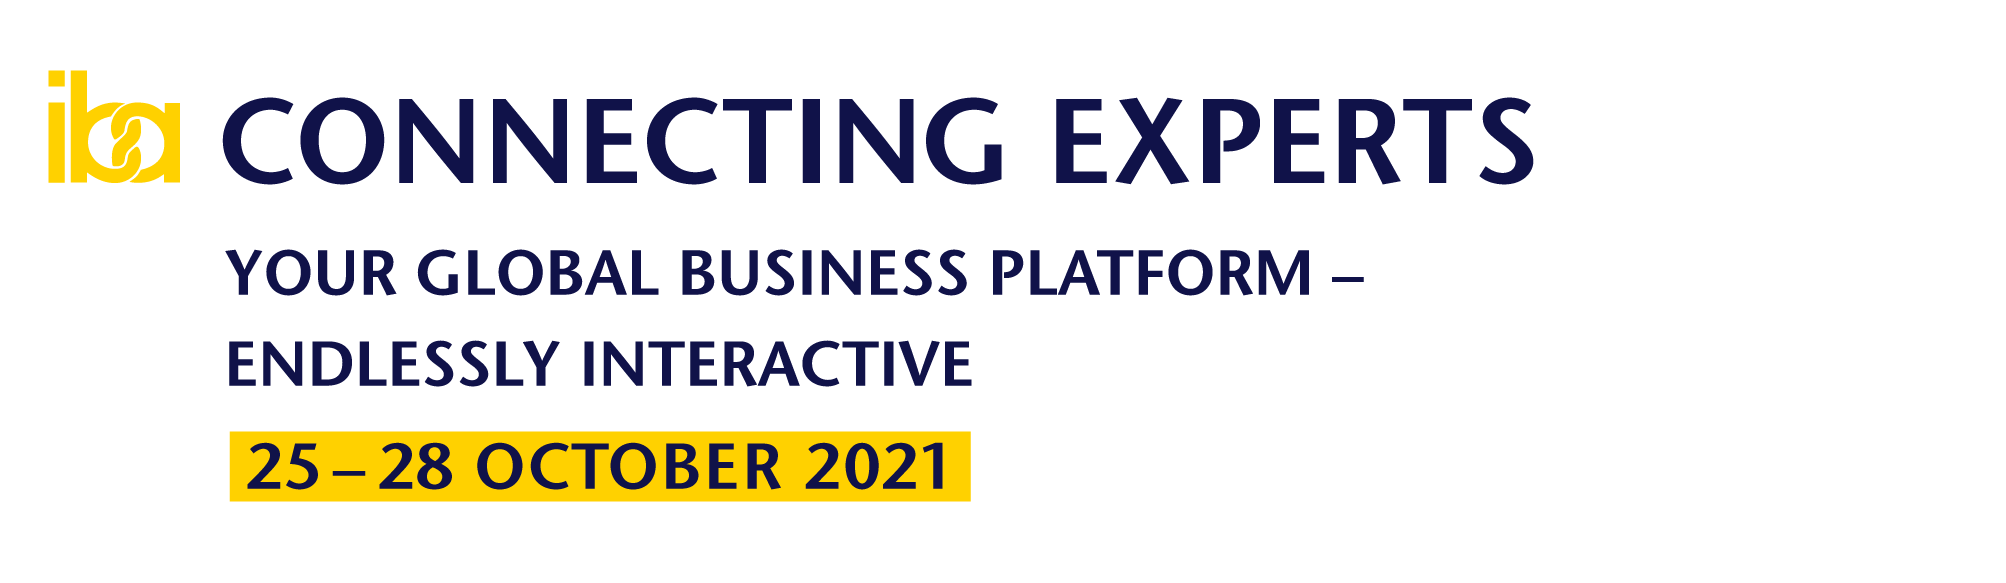 iba.CONNECTING EXPERTS logo